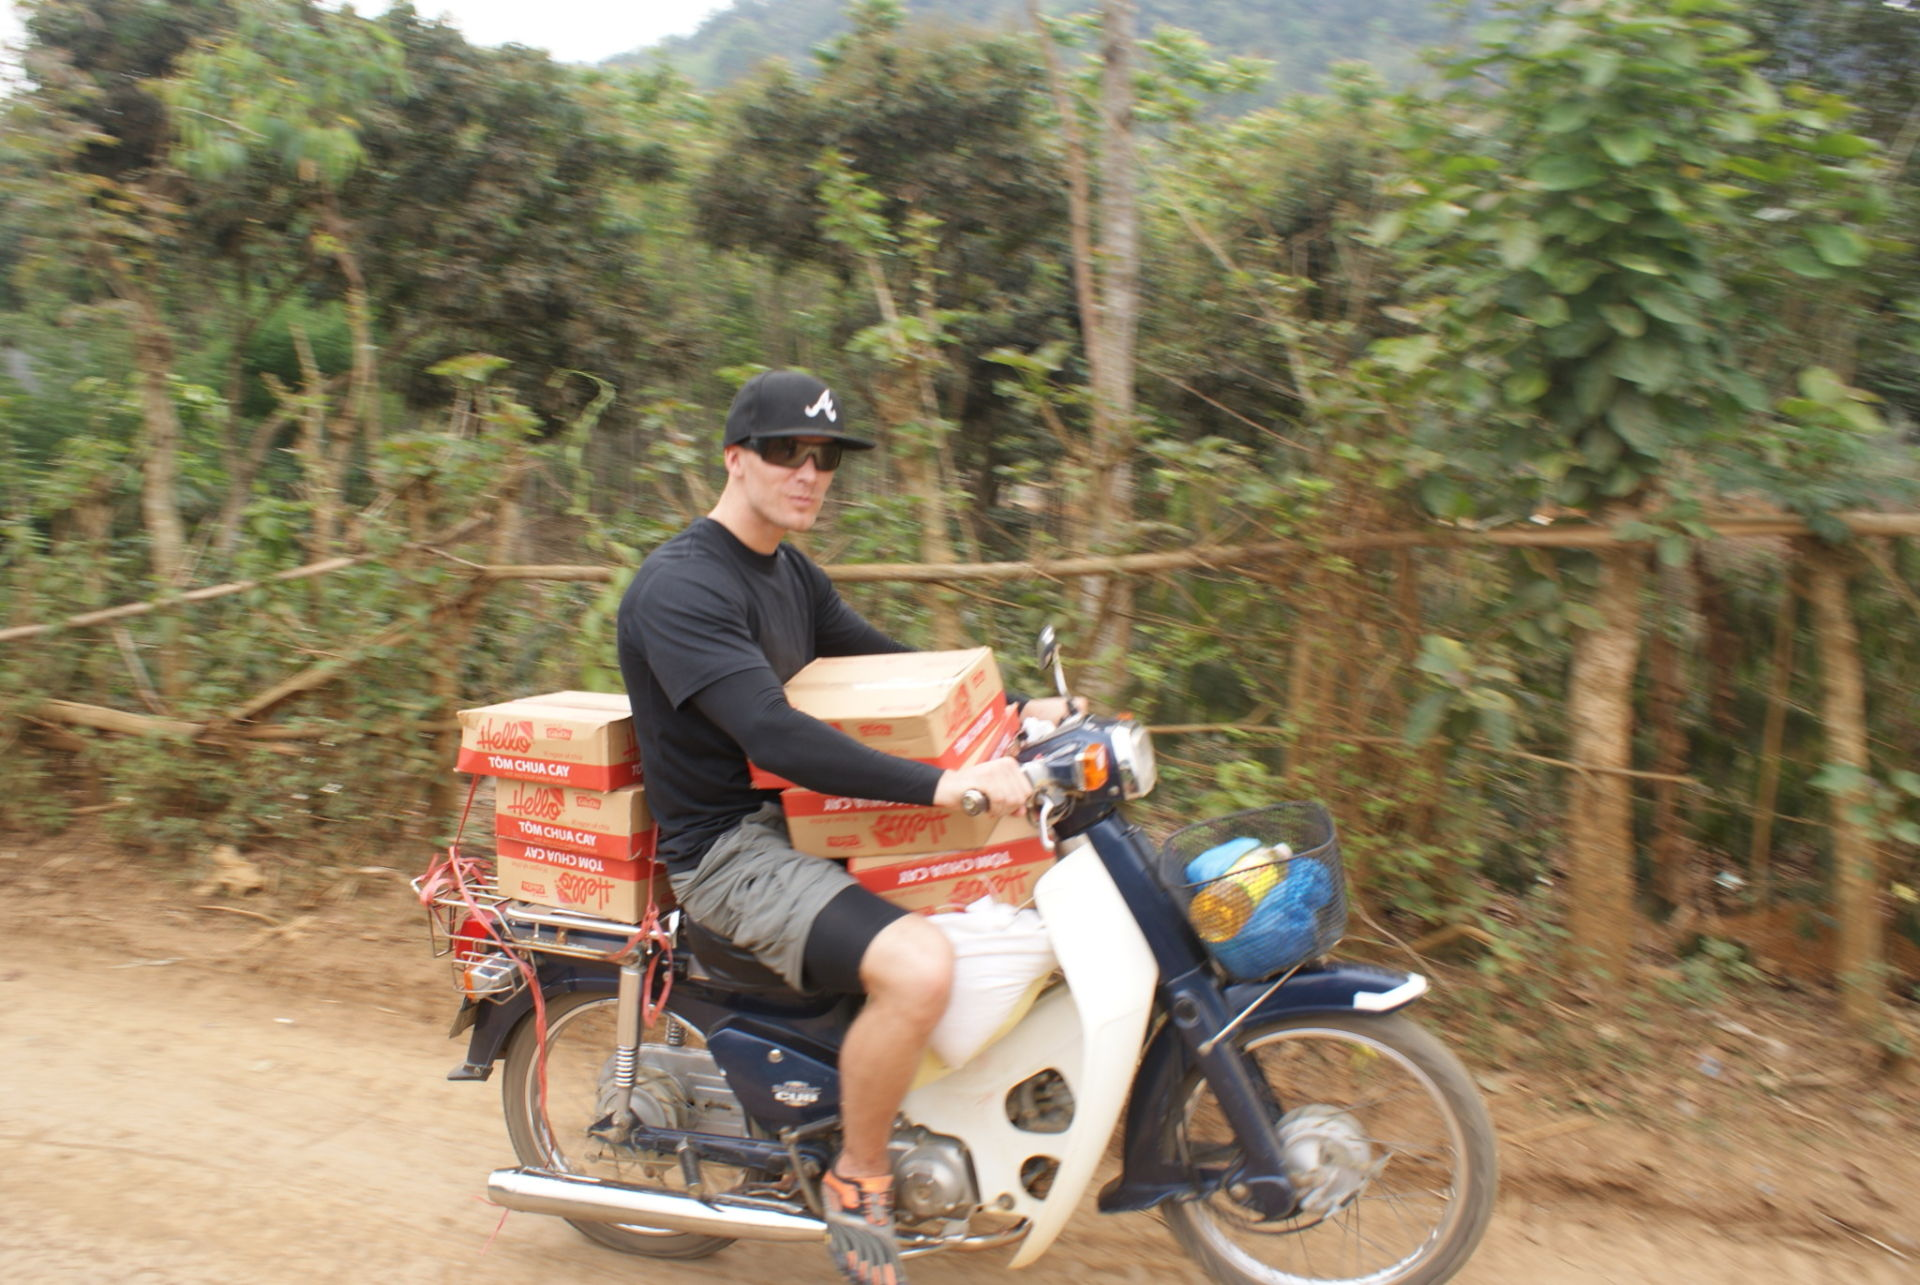 Riding on a motorbike dropping off food at poor families doorsteps like Santa Clause. Probably the coolest thing I've ever done. Feed starving people hopes to inspire others to do this. We will show you how... just contact us!